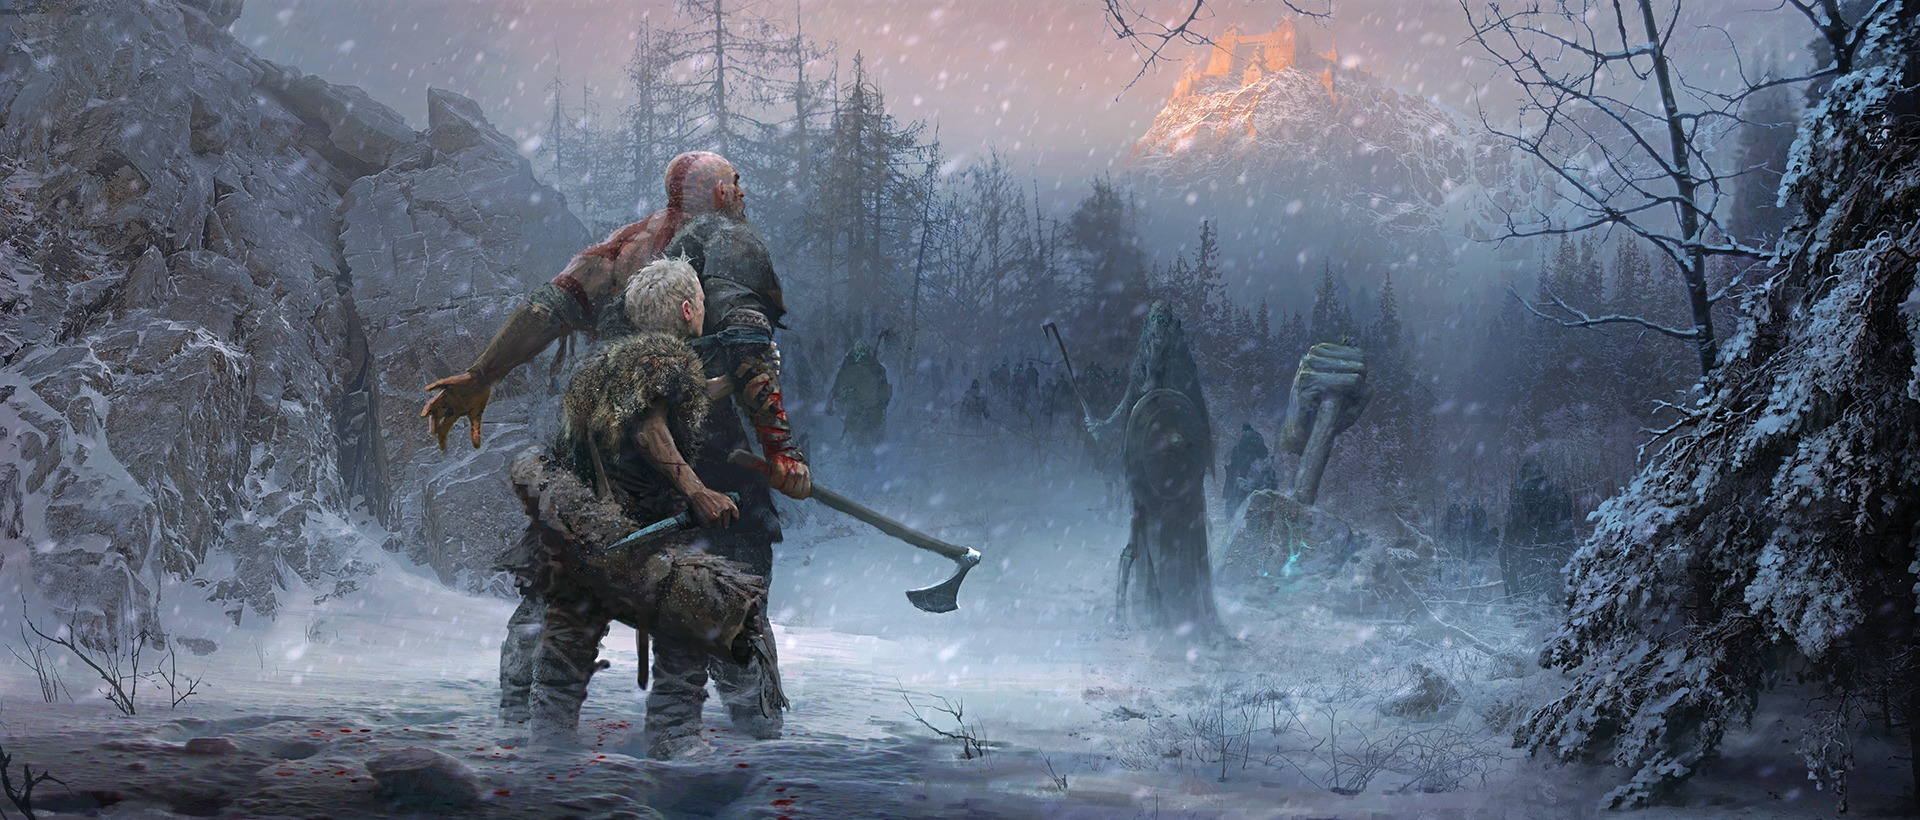 From Savage to Subtle; God of War's Tonal Contrasts